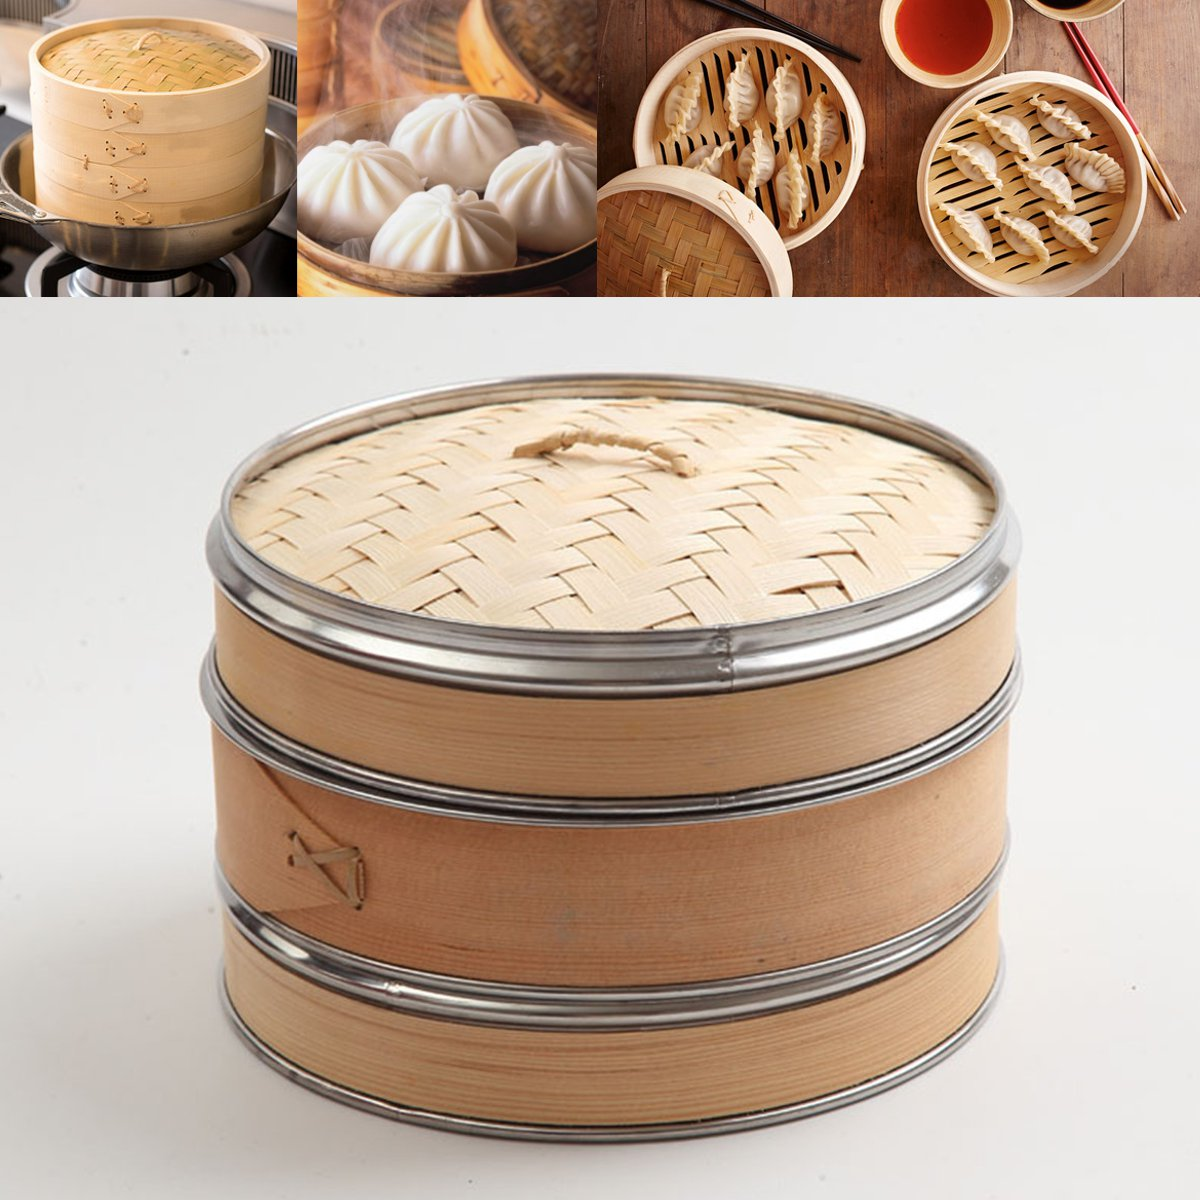 Natural Woven Bamboo Steamer Banding Dim Sum Vegetables Rice Cooker Home Kitchen Cooking Tools Cookware Set 10'' 2 Tiers 1 Lid